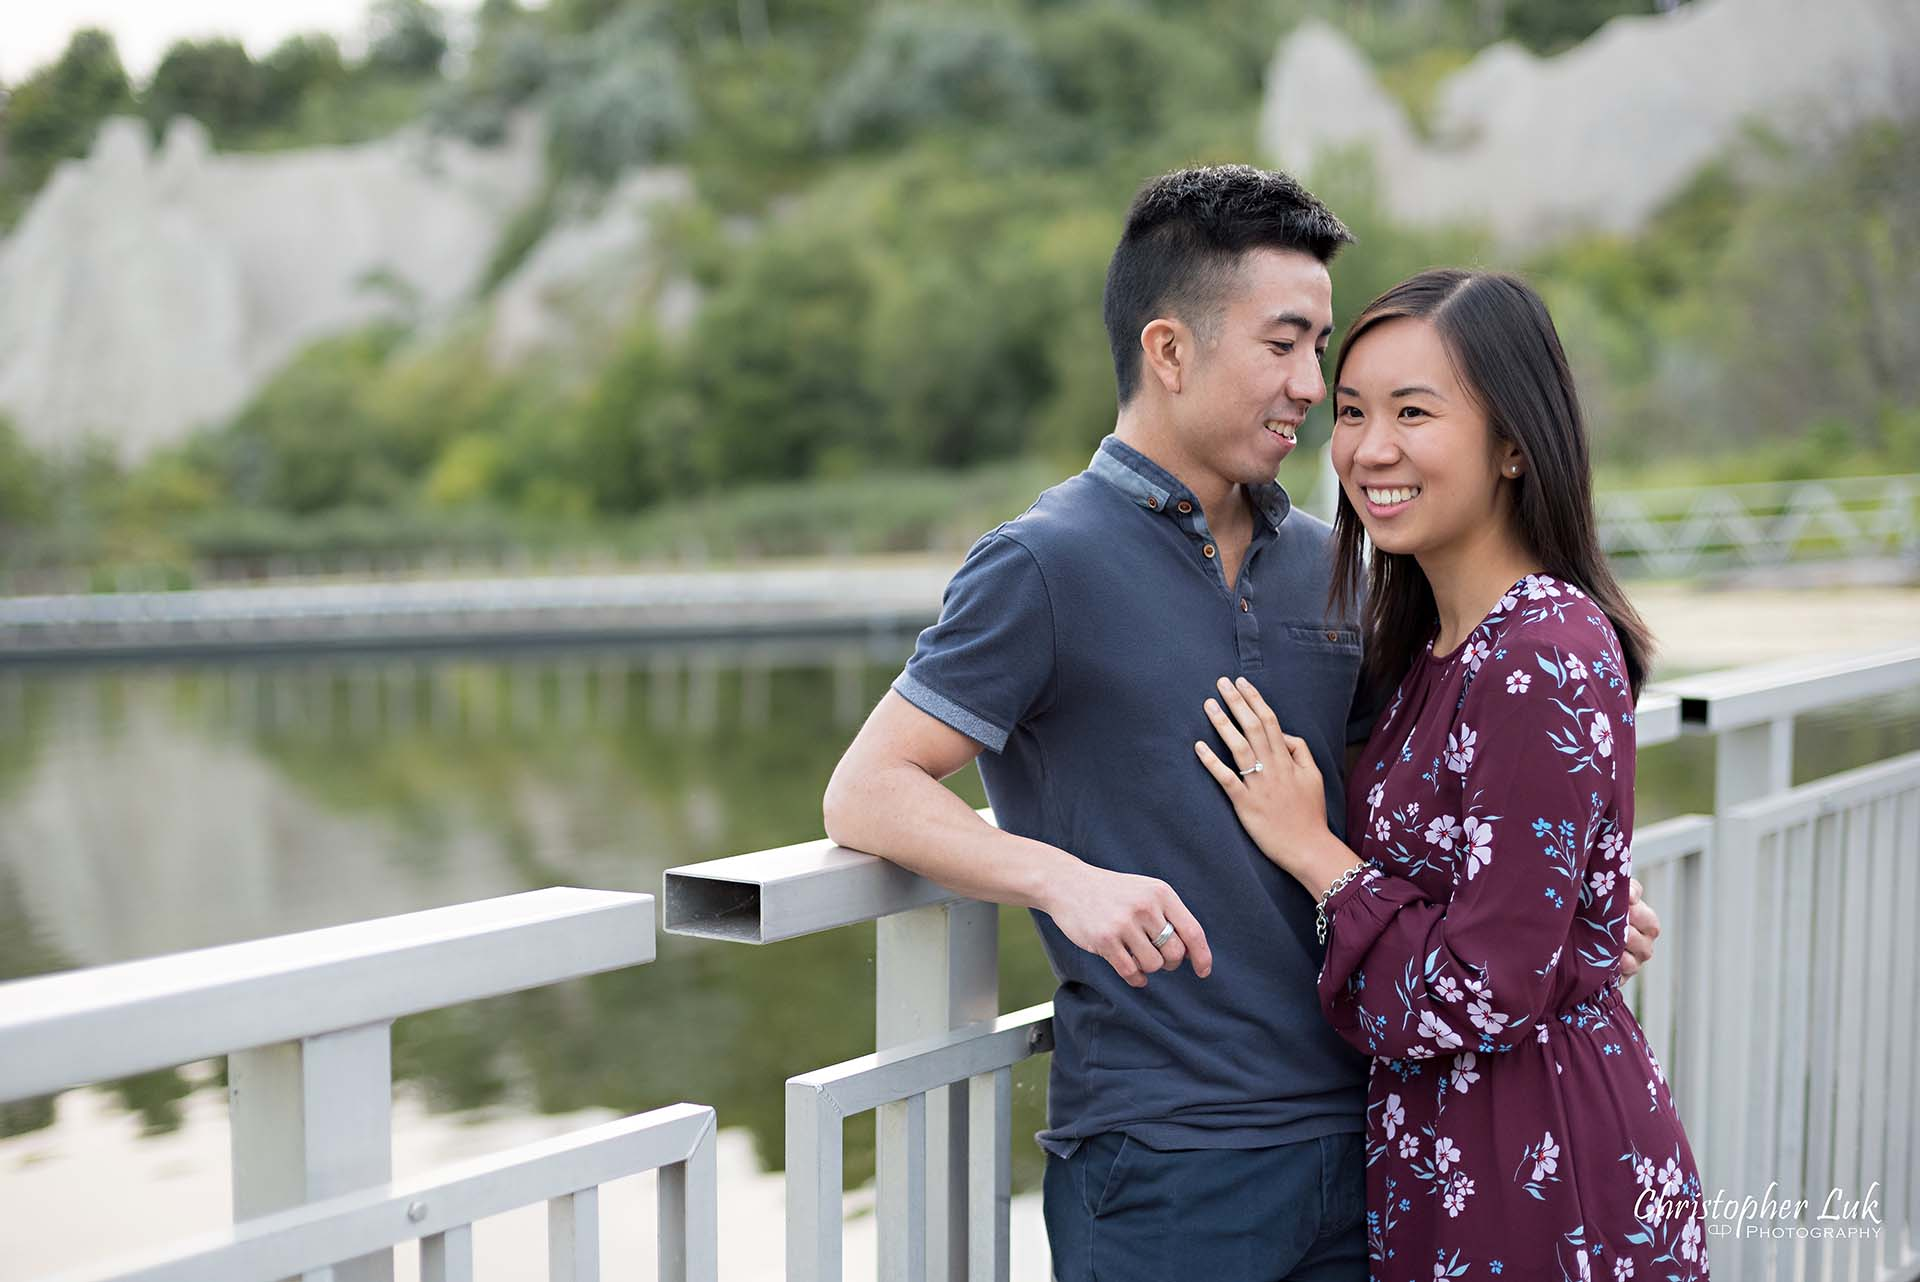 Christopher Luk Toronto Photographer Scarborough Bluffs Beach Park Sunset Surprise Wedding Marriage Engagement Proposal Candid Natural Photojournalistic Bride Groom Hug Boardwalk Bridge Smile